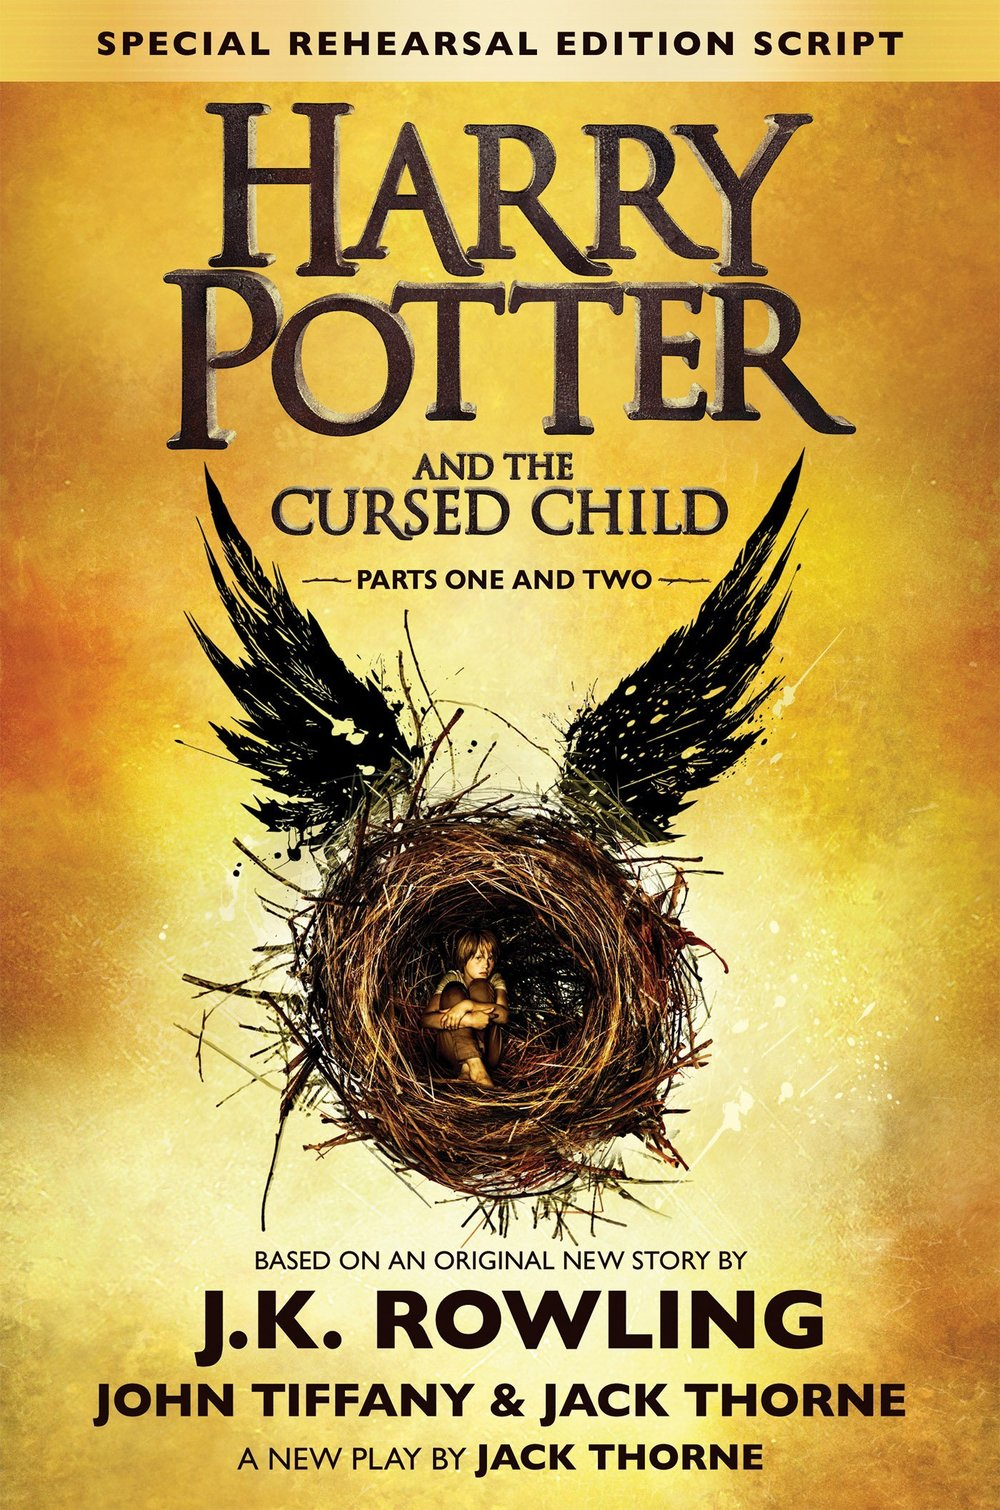 Harry Potter & The Cursed Child *** because you can't read all the Harry Potter series and then NOT read one of the most talked about books of the year. So good, I never wanted it to end.